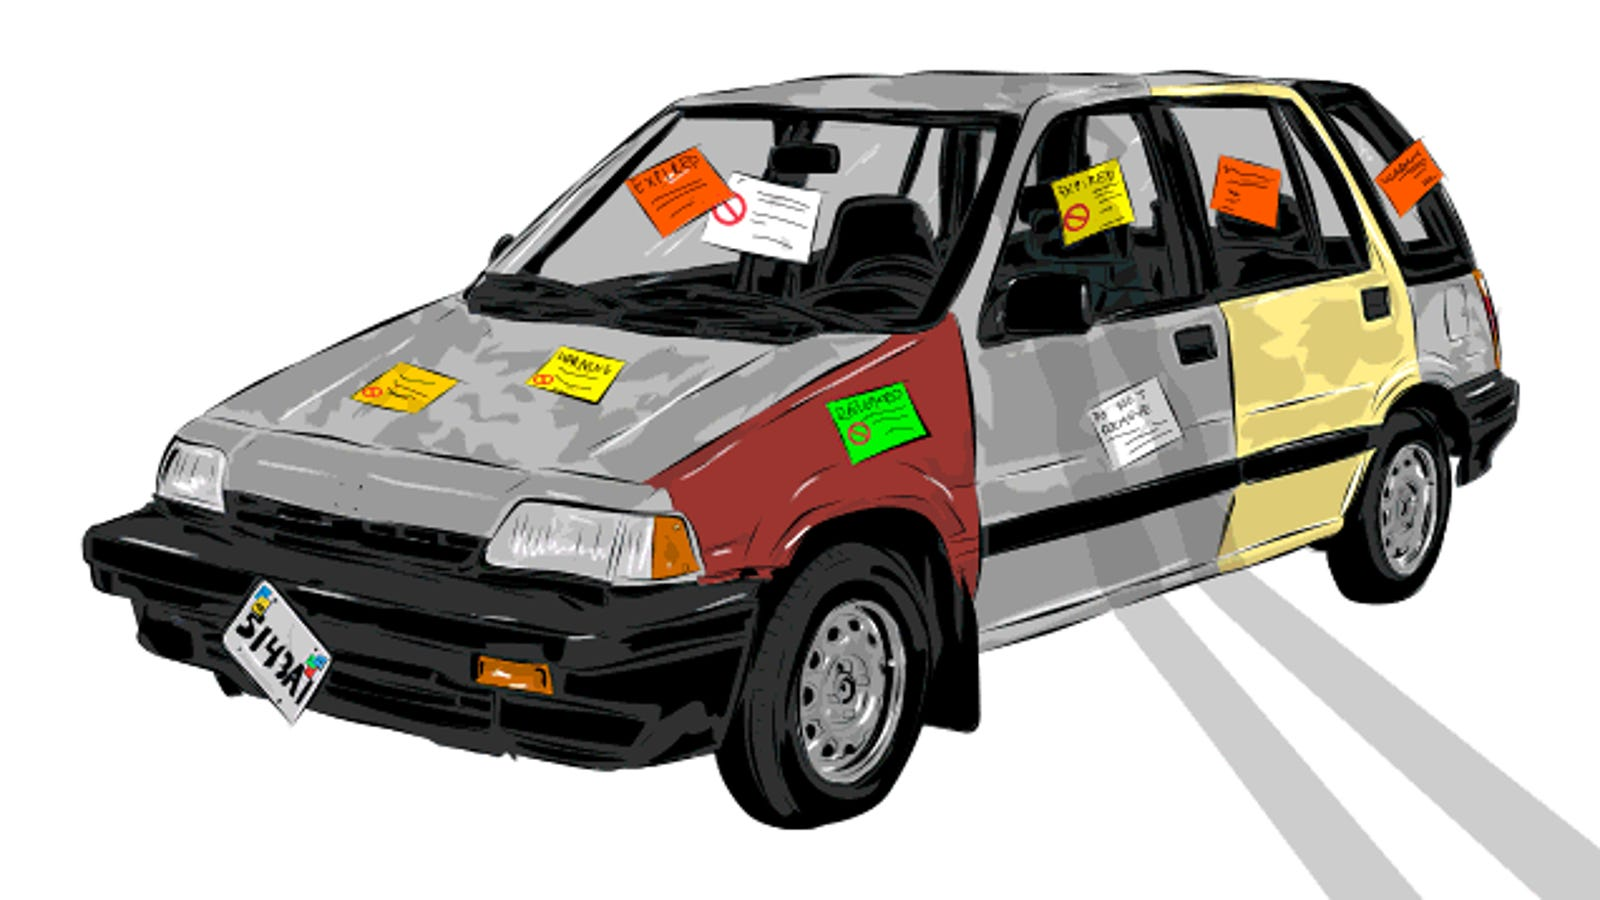 How To Drive An Illegal-Ass Car For Years Without Getting Busted